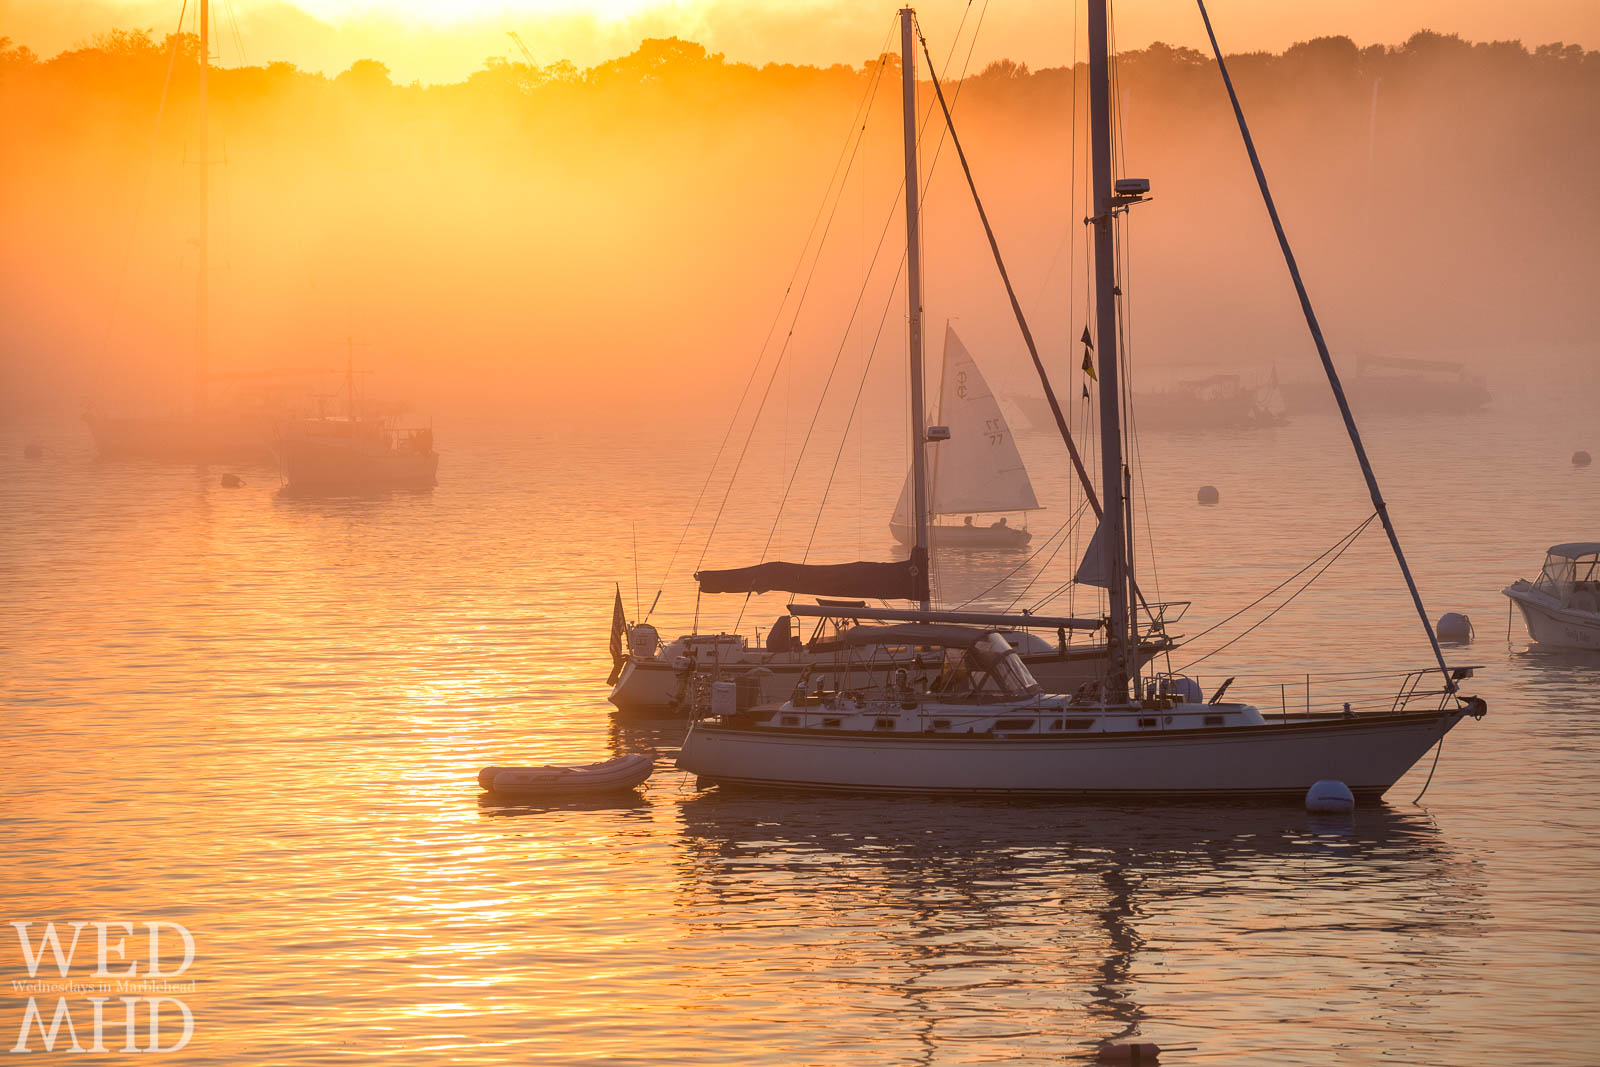 Summer fog takes hold of Marblehead Harbor at sunset on a warm Summer evening